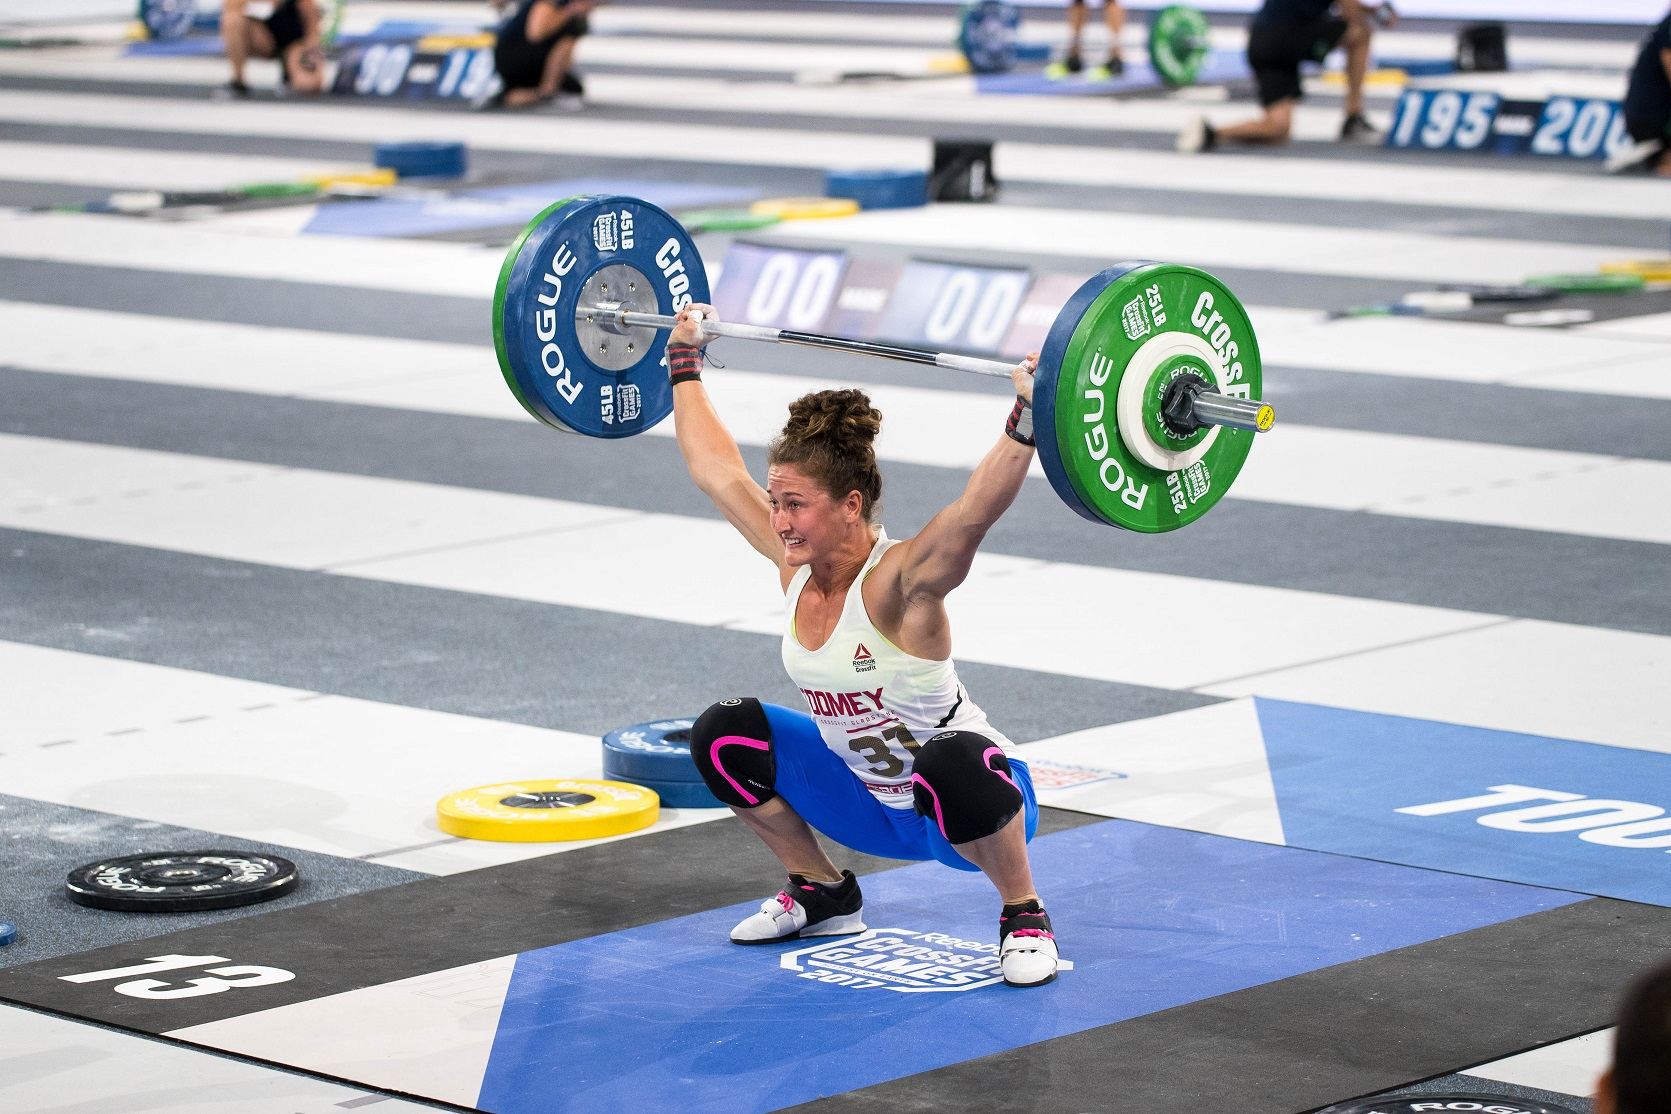 CrossFit Games champion 2017, Tia Clare Toomey, during the max snatch event